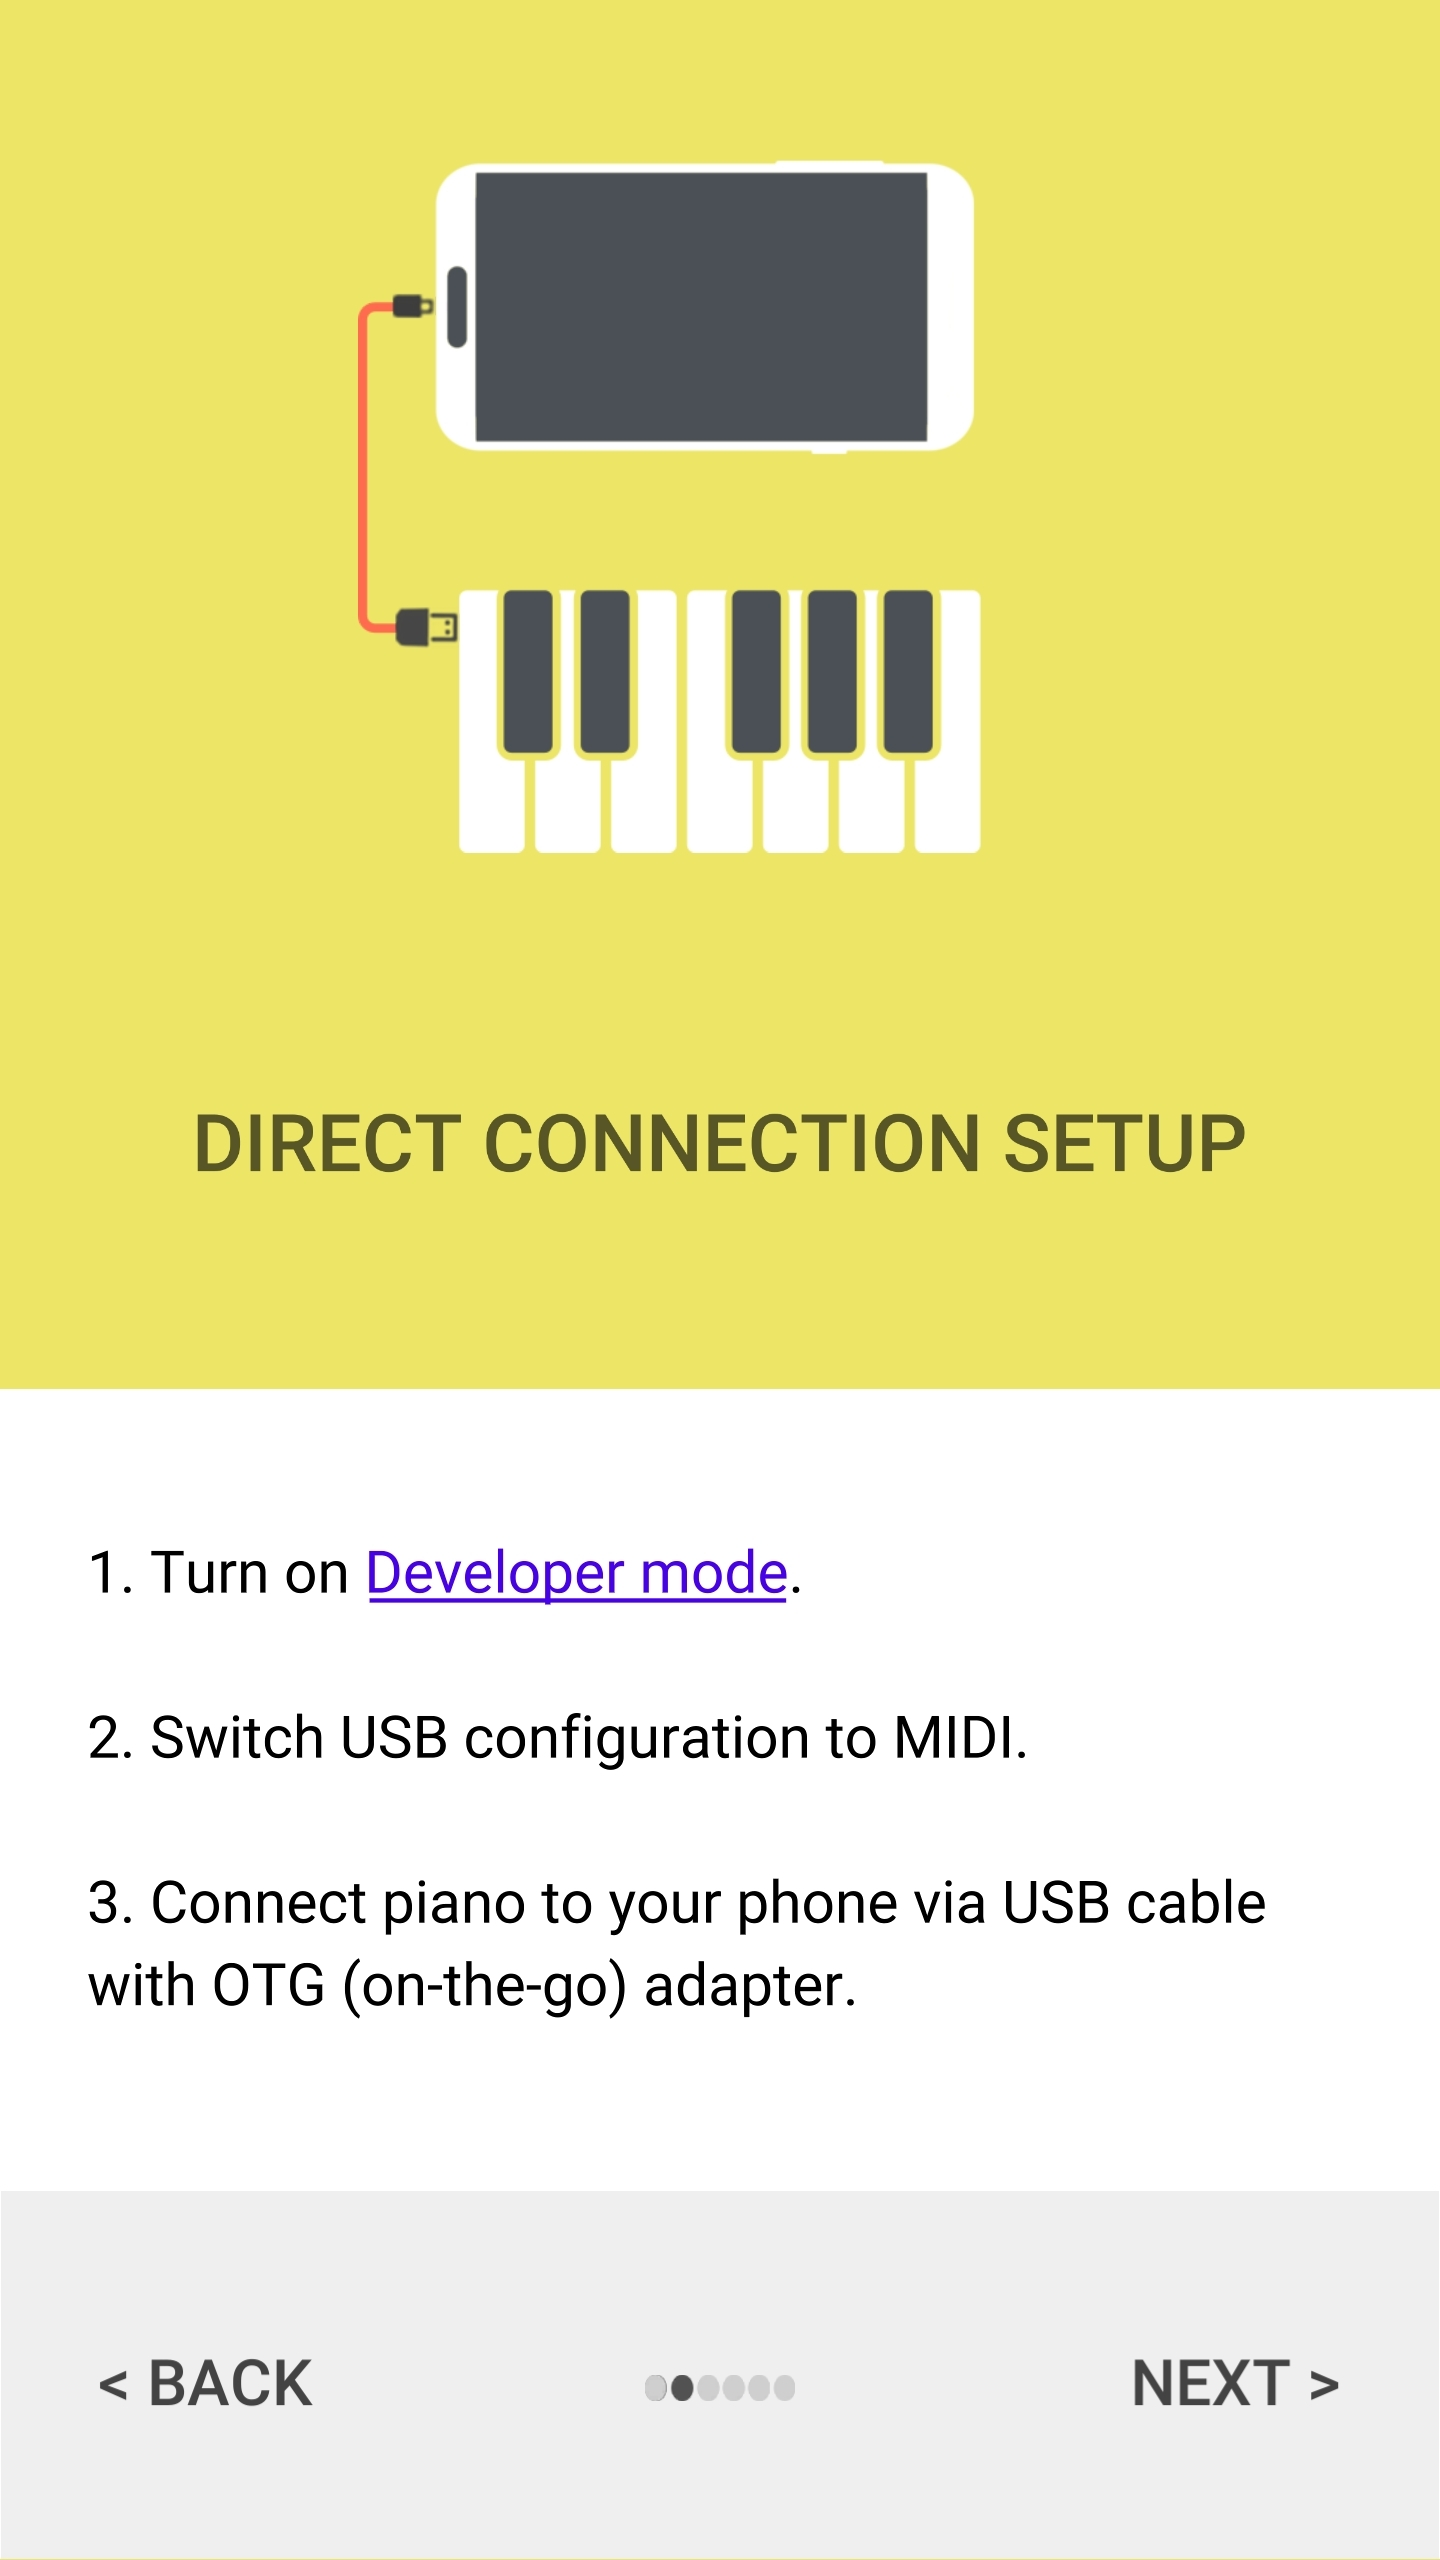 how to make steam direct connect to server